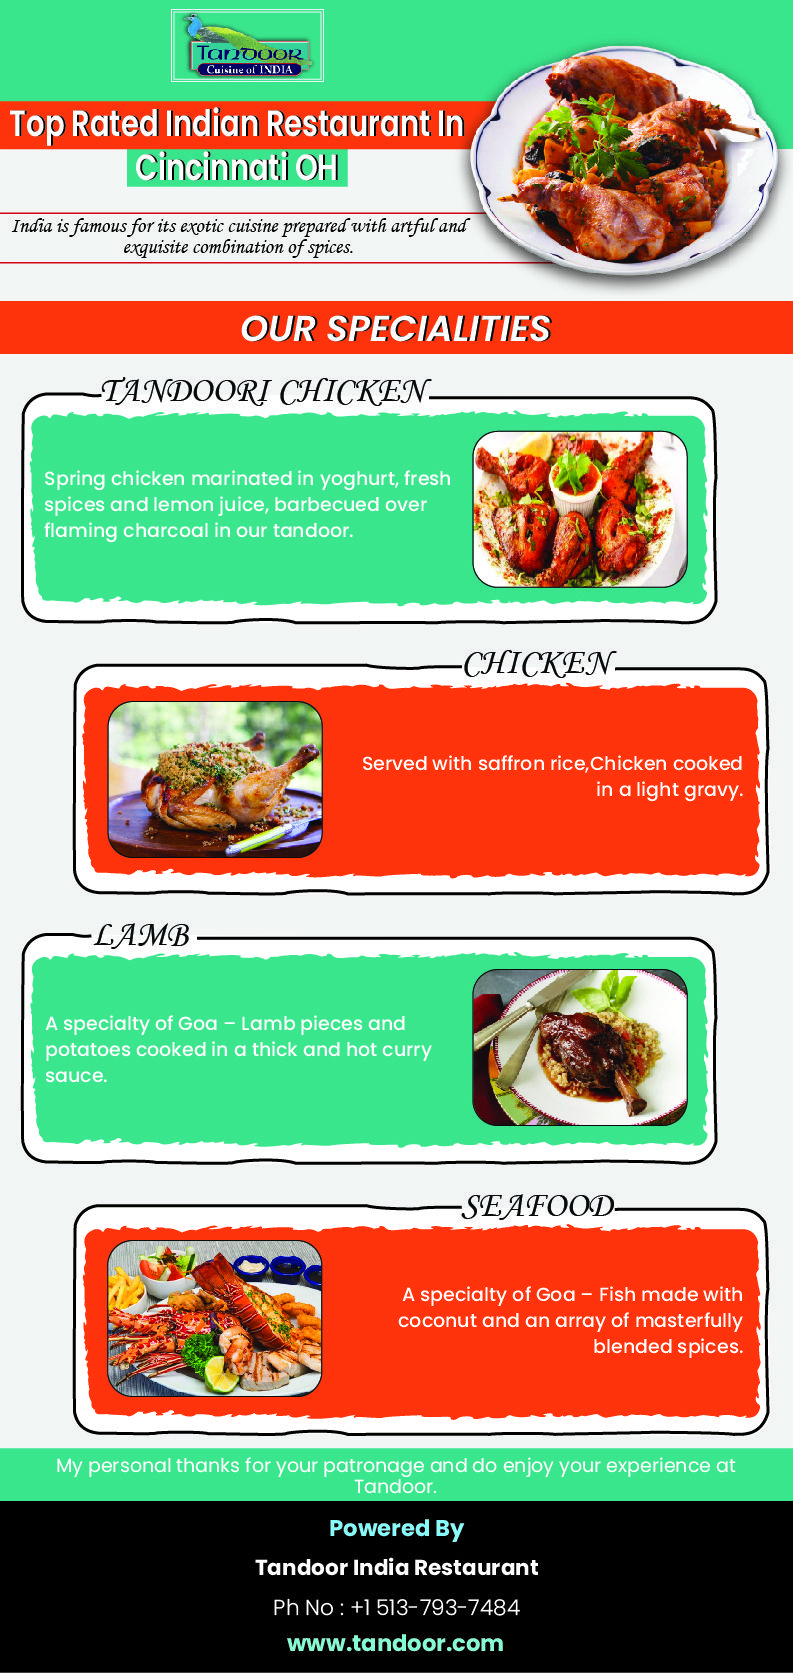 Tandoor india restaurant is famous for its indian food in